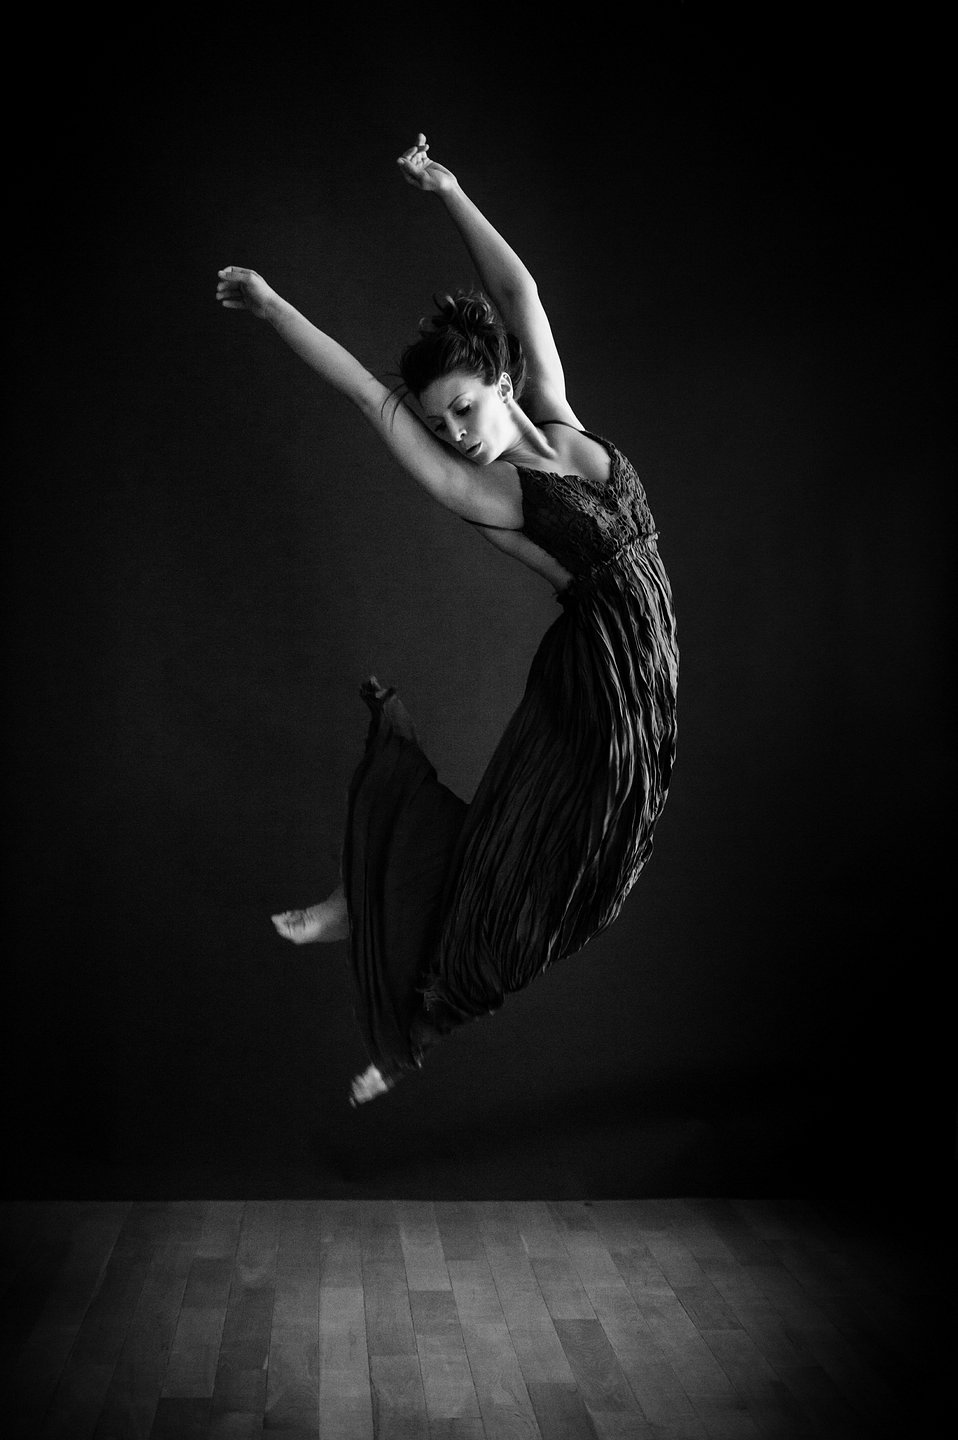 Los Angeles Dance Portrait Photo - Stephanie Abrams - by Tommy Xing Photography 15.jpg